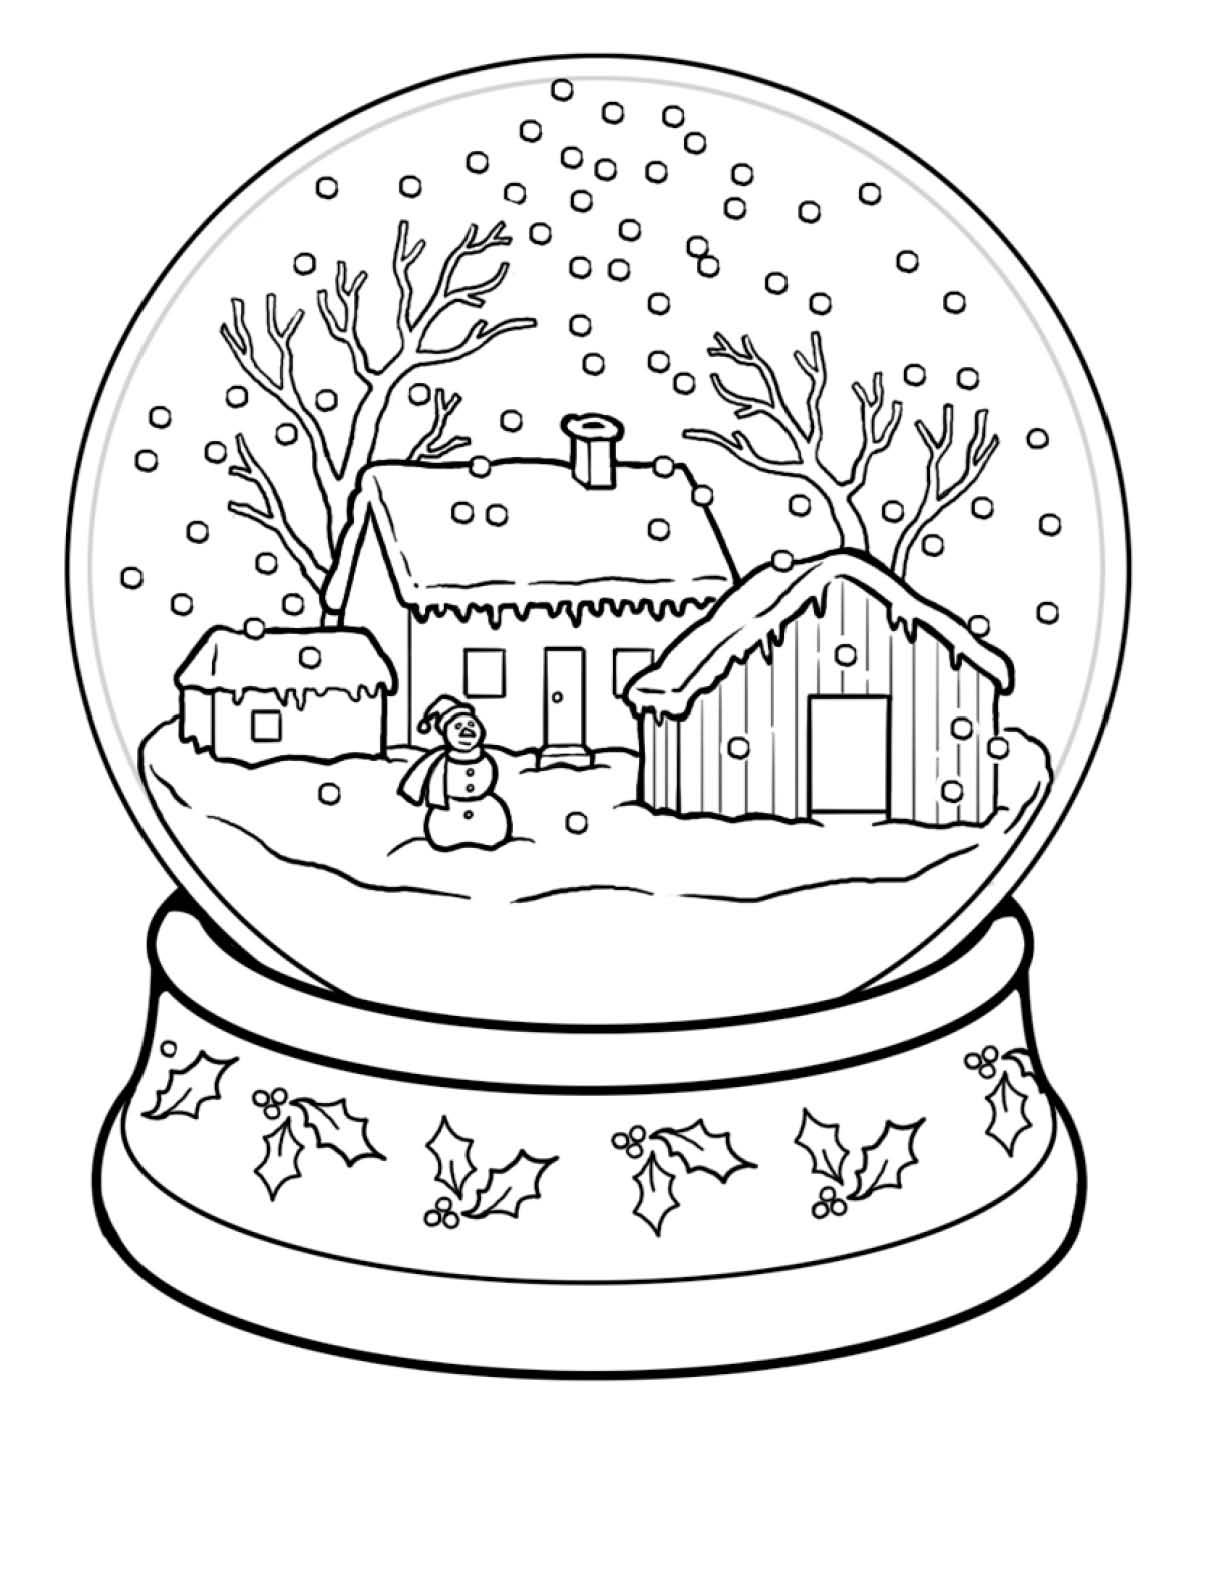 Winter Scenes Coloring Pages Printable | Winter | Pinterest | Scene ...